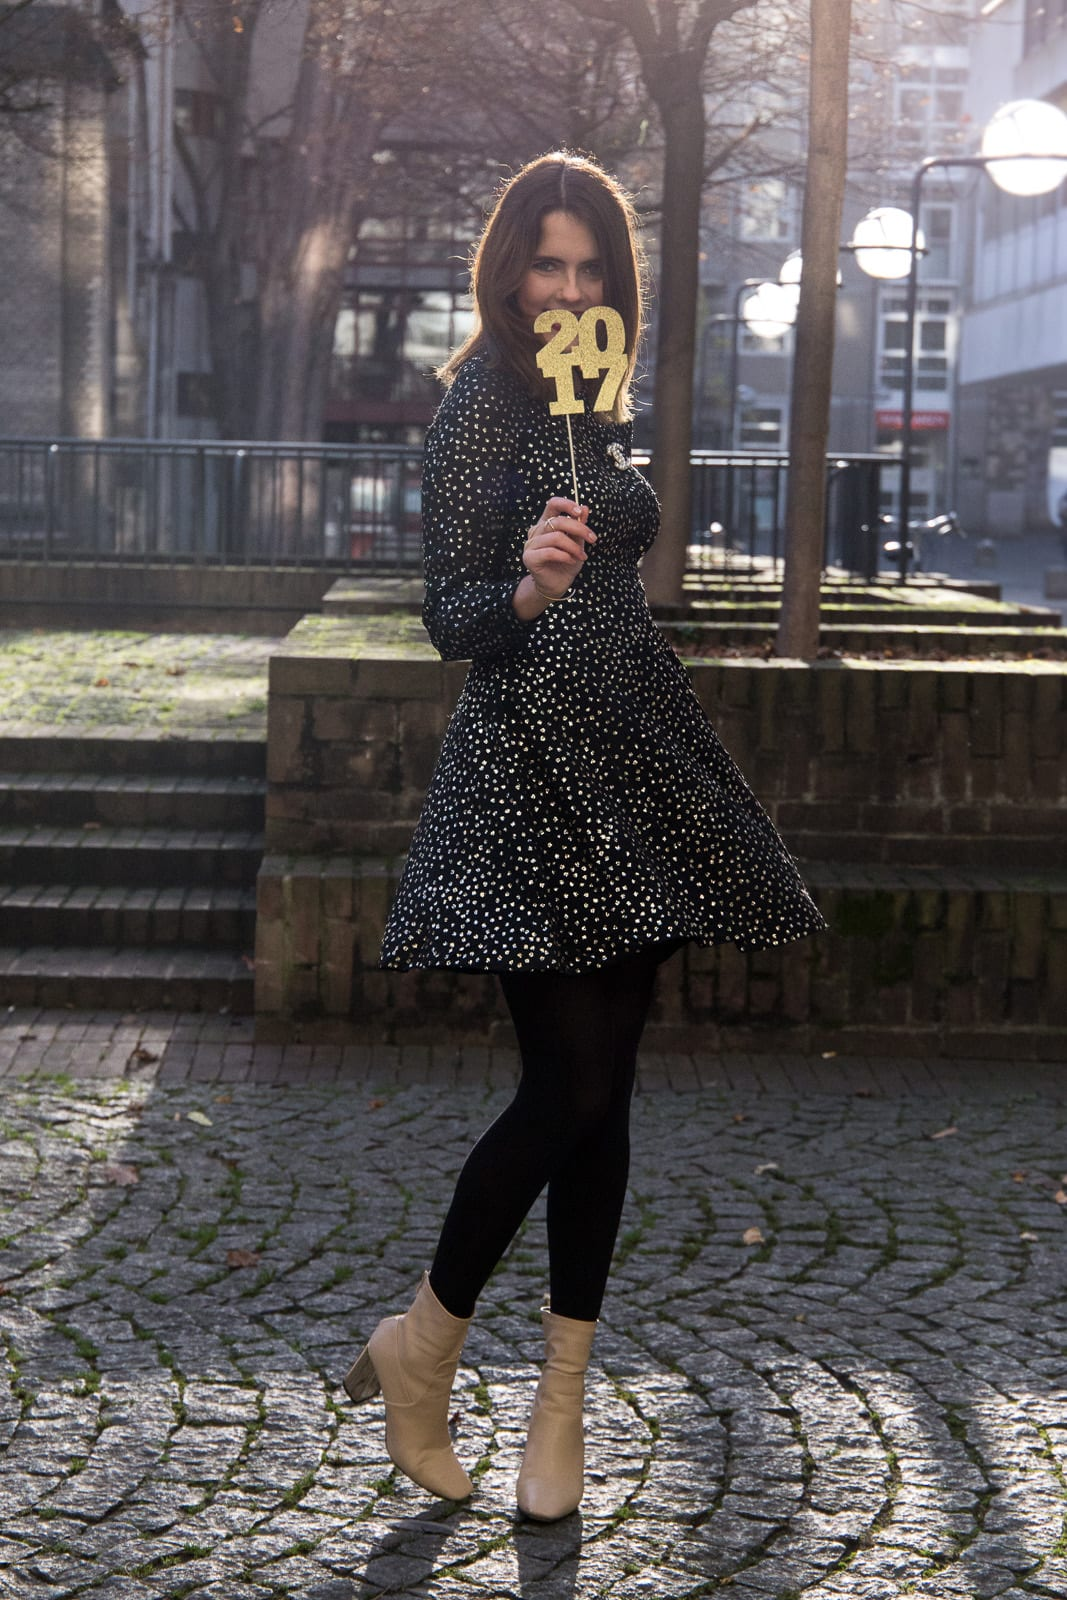 Mein Silvester Outfit 2016: &other Stories Glitzer Kleid